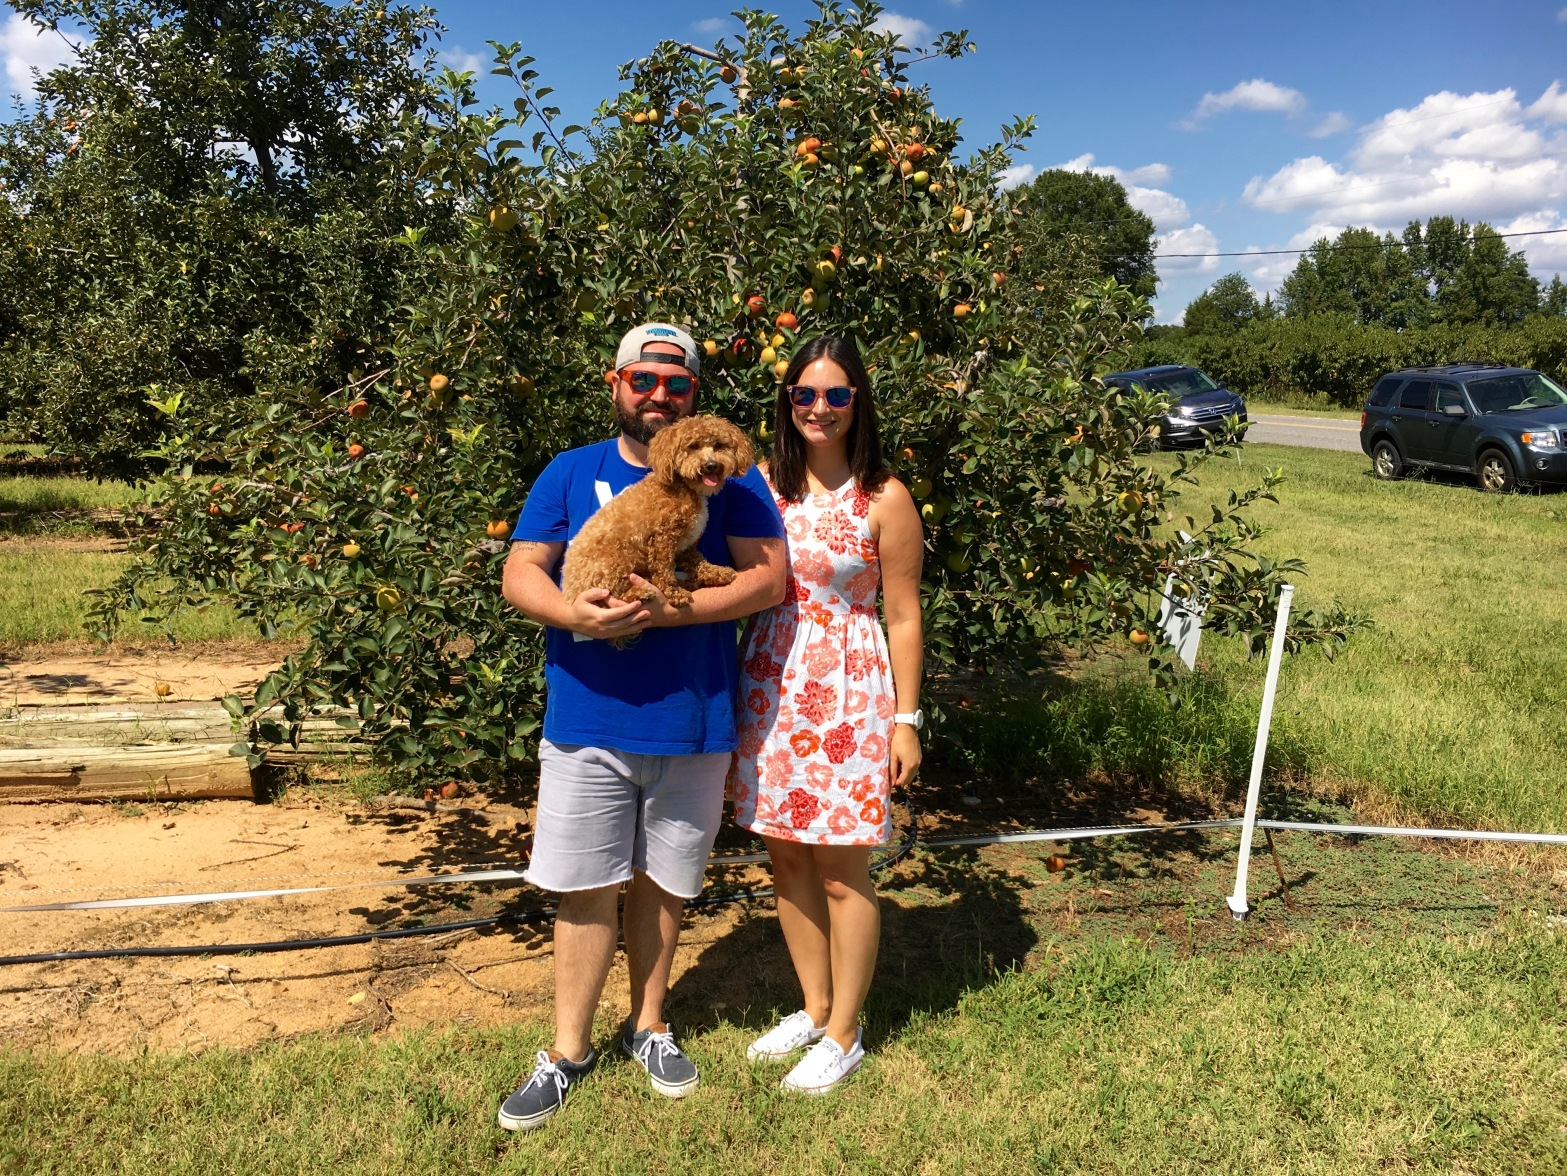 Family photo at Windy Hill Orchards